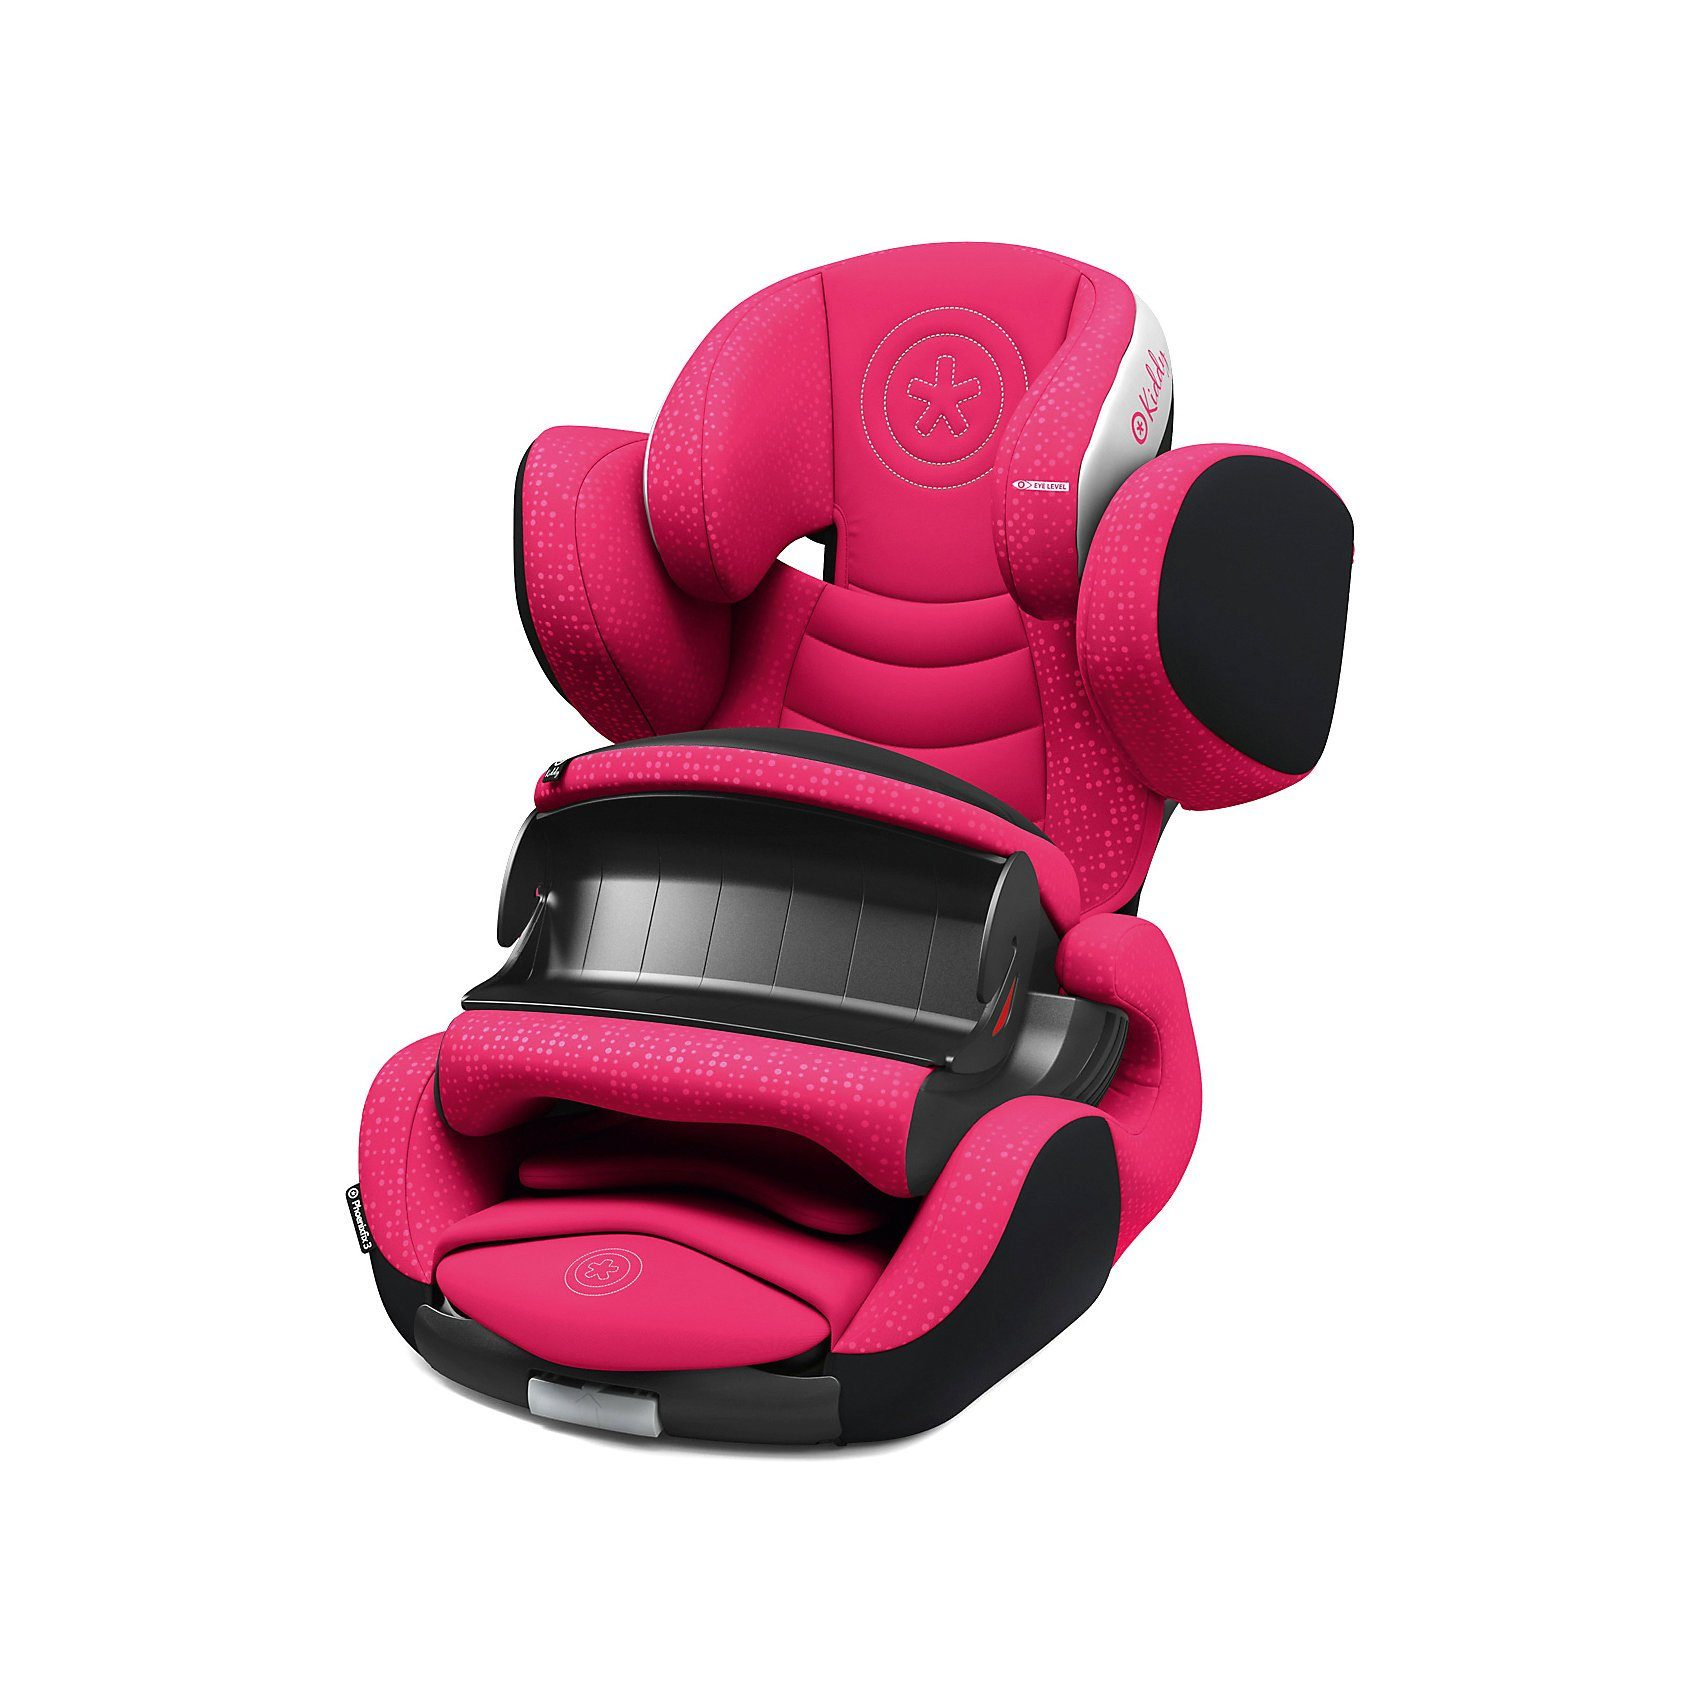 kiddy Auto-Kindersitz Phoenixfix 3, Berry Pink, 2018